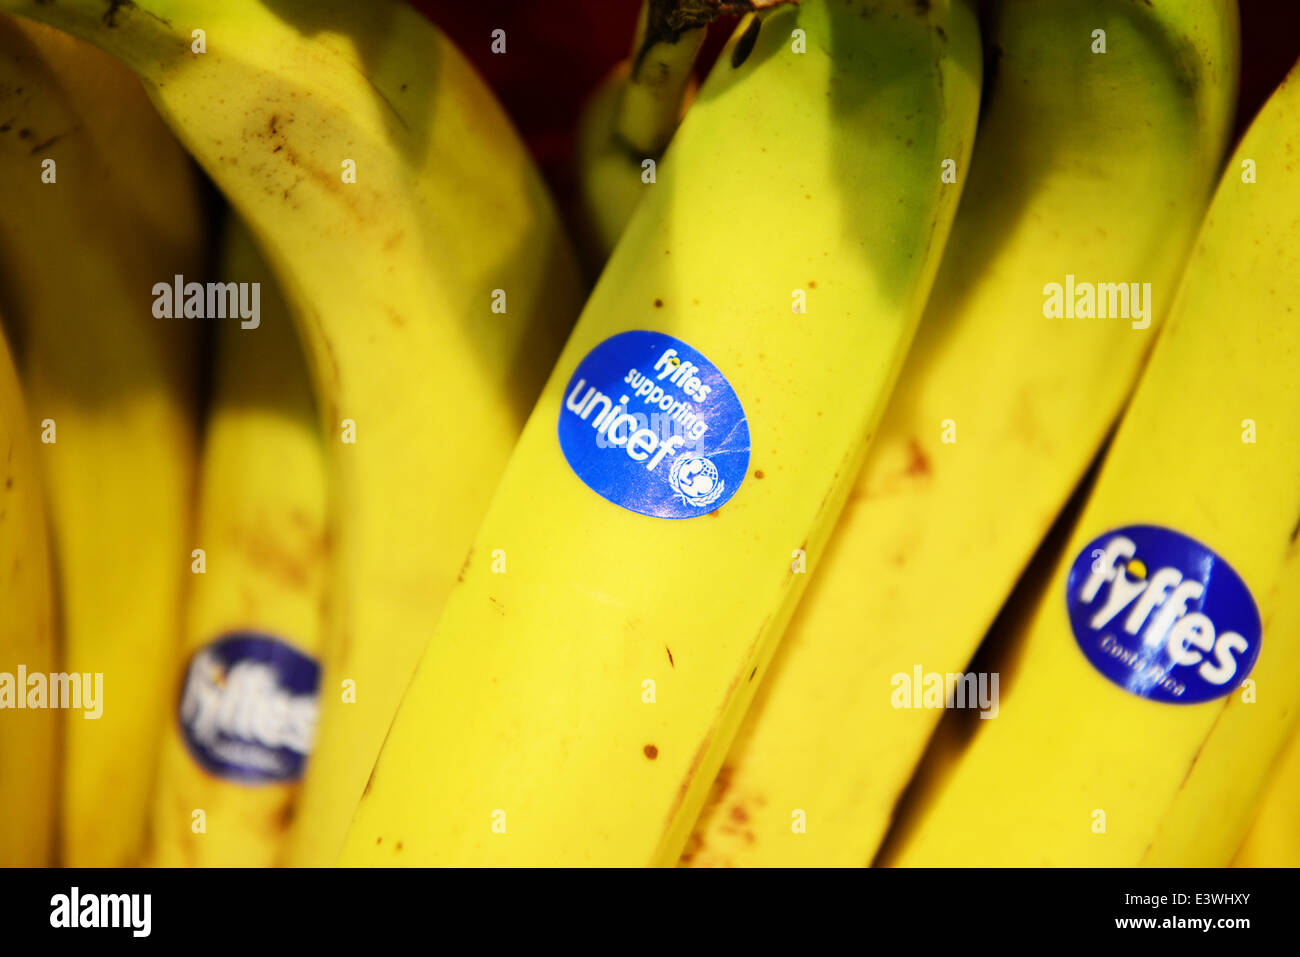 Fyffes Bananas, supporting unicef - Stock Image